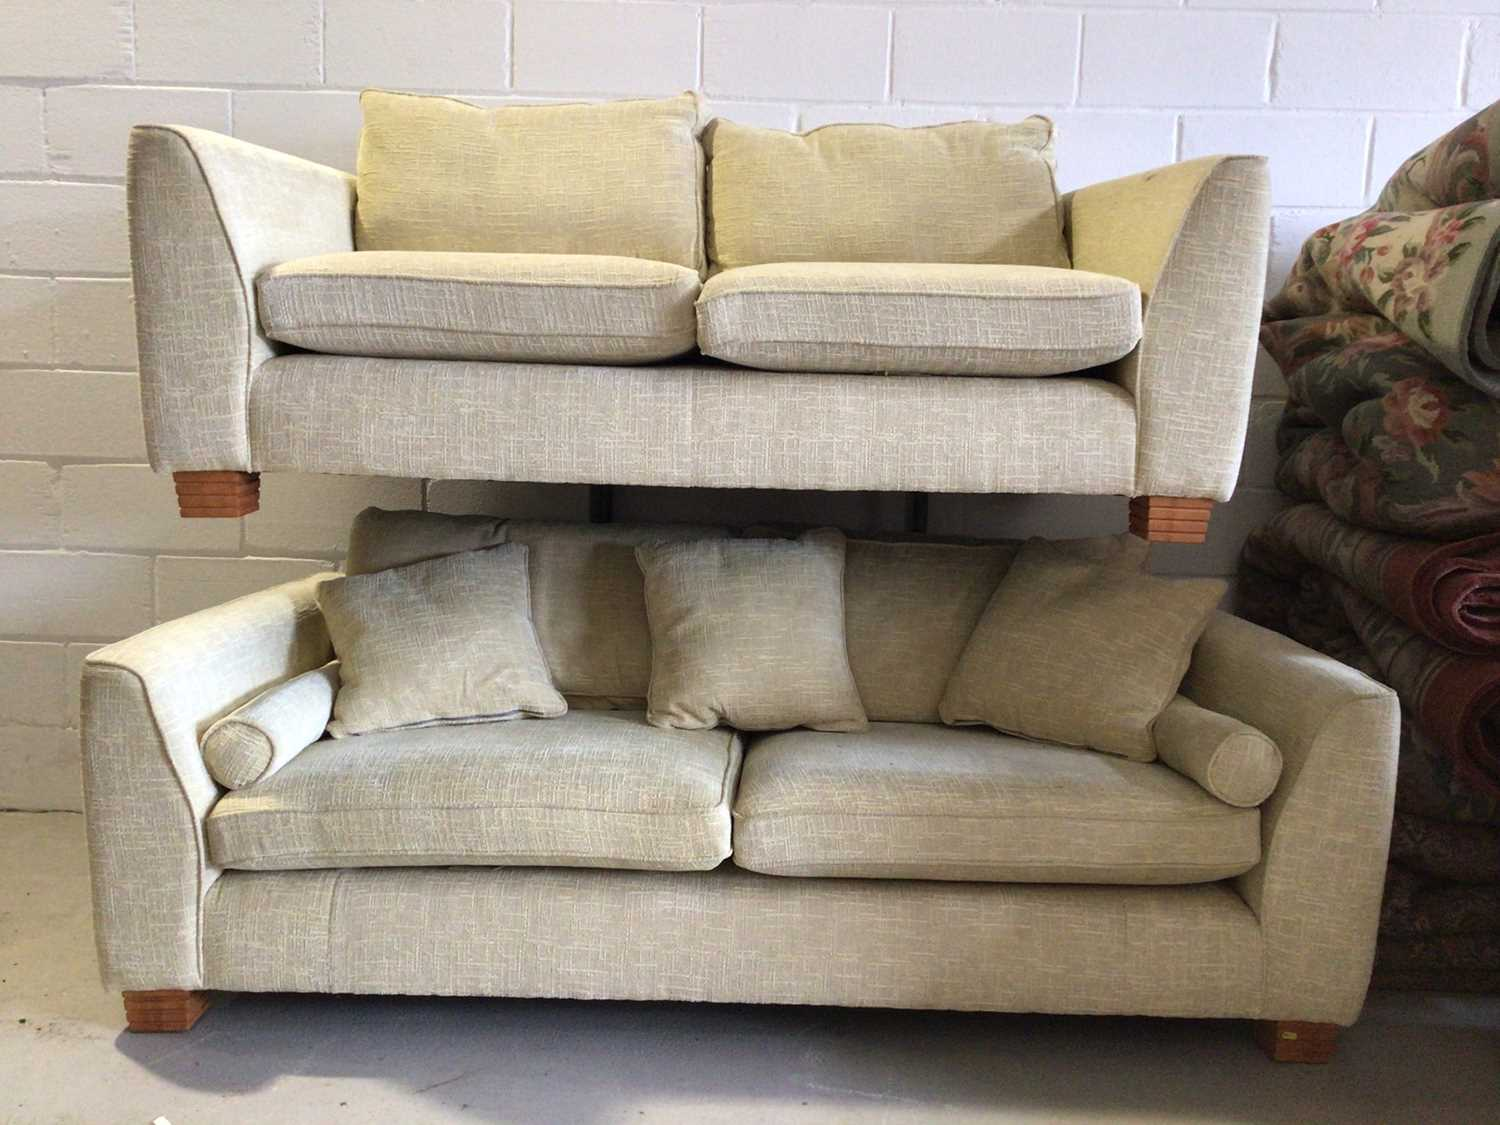 Contemporary three piece suite with pale yellow upholstery comprising a pair of two seater settees 2